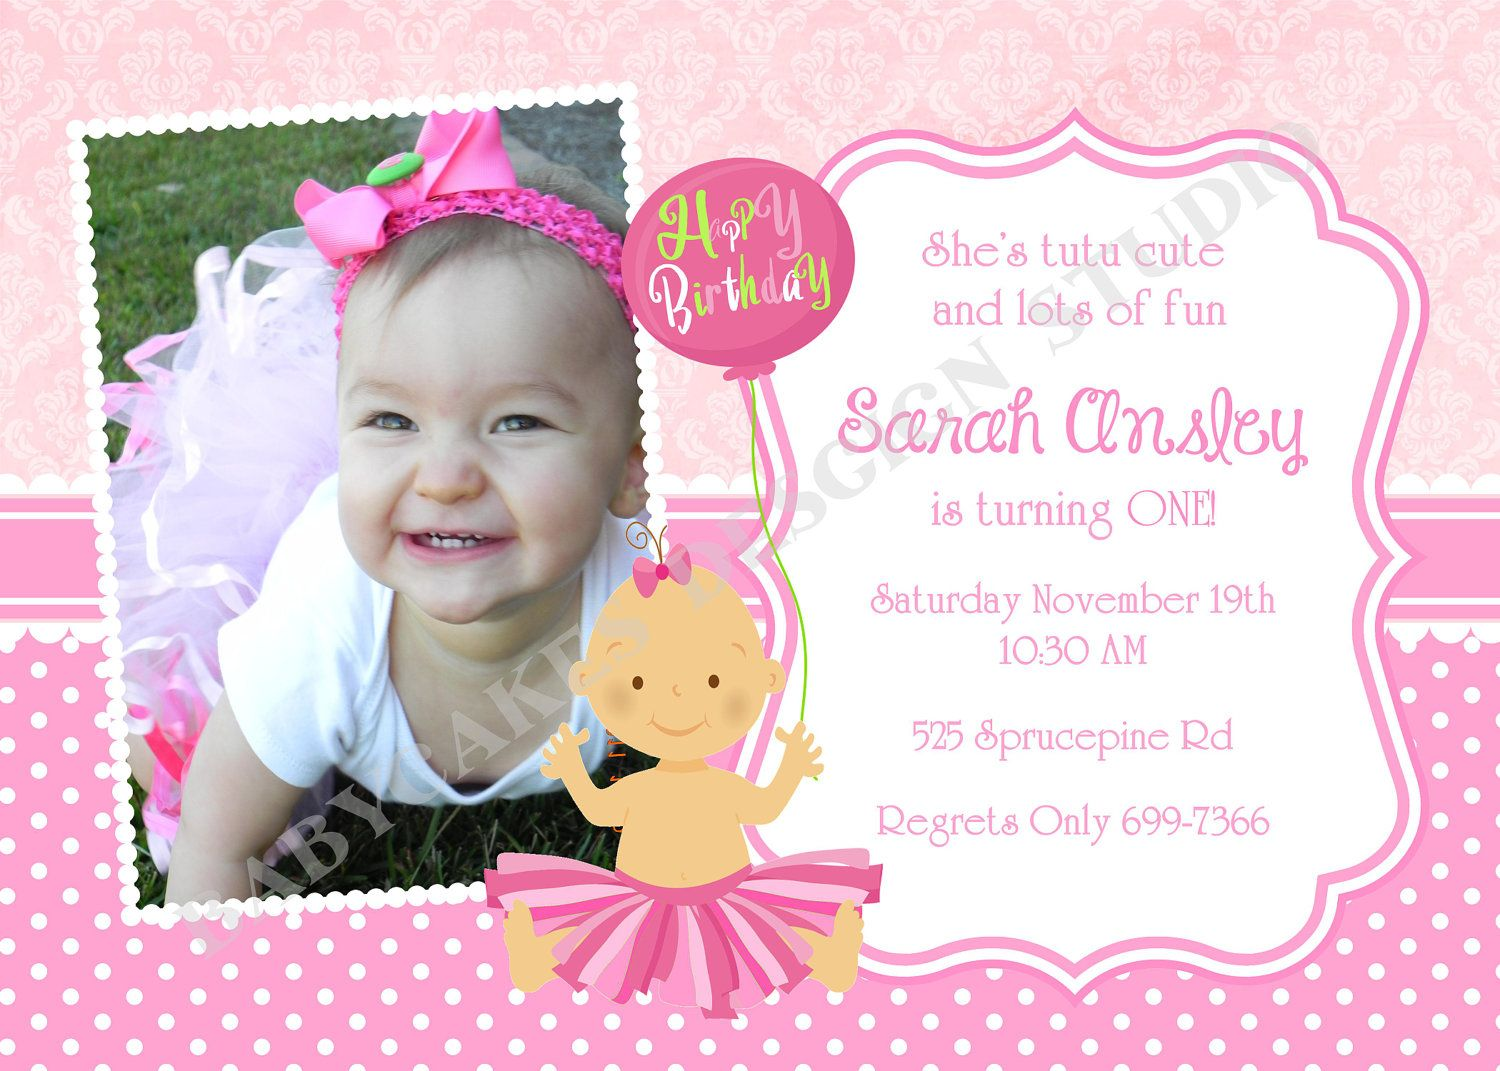 1st birthday invitation photo tutu princess diy print your own 1st birthday invitation photo tutu princess diy print your own matching party printables available stopboris Image collections